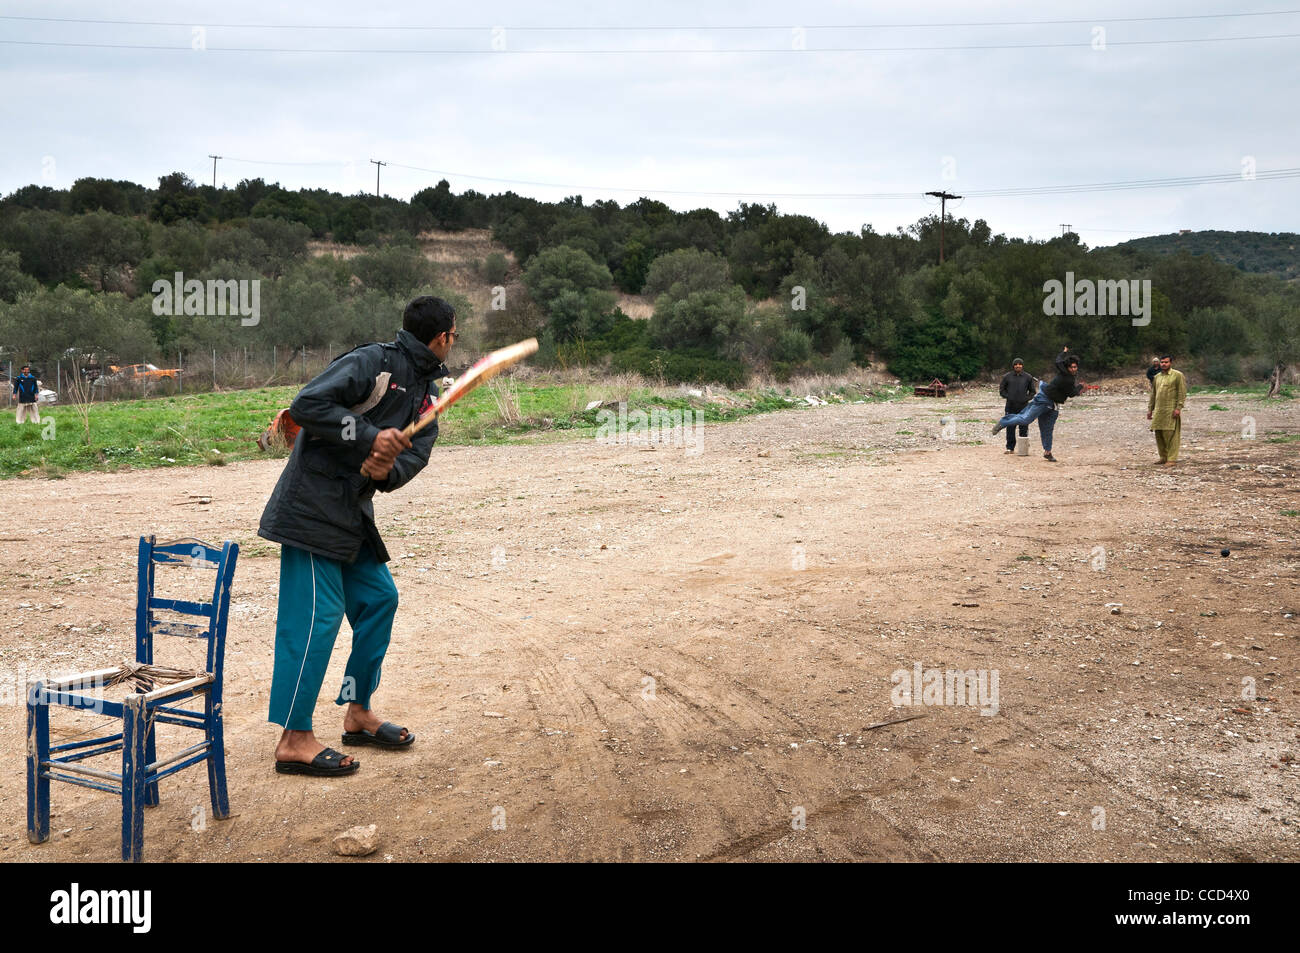 Pakistani, immigrant workers playing cricket in their lunch break, near Methana, Argolis, Peloponnese, Greece - Stock Image